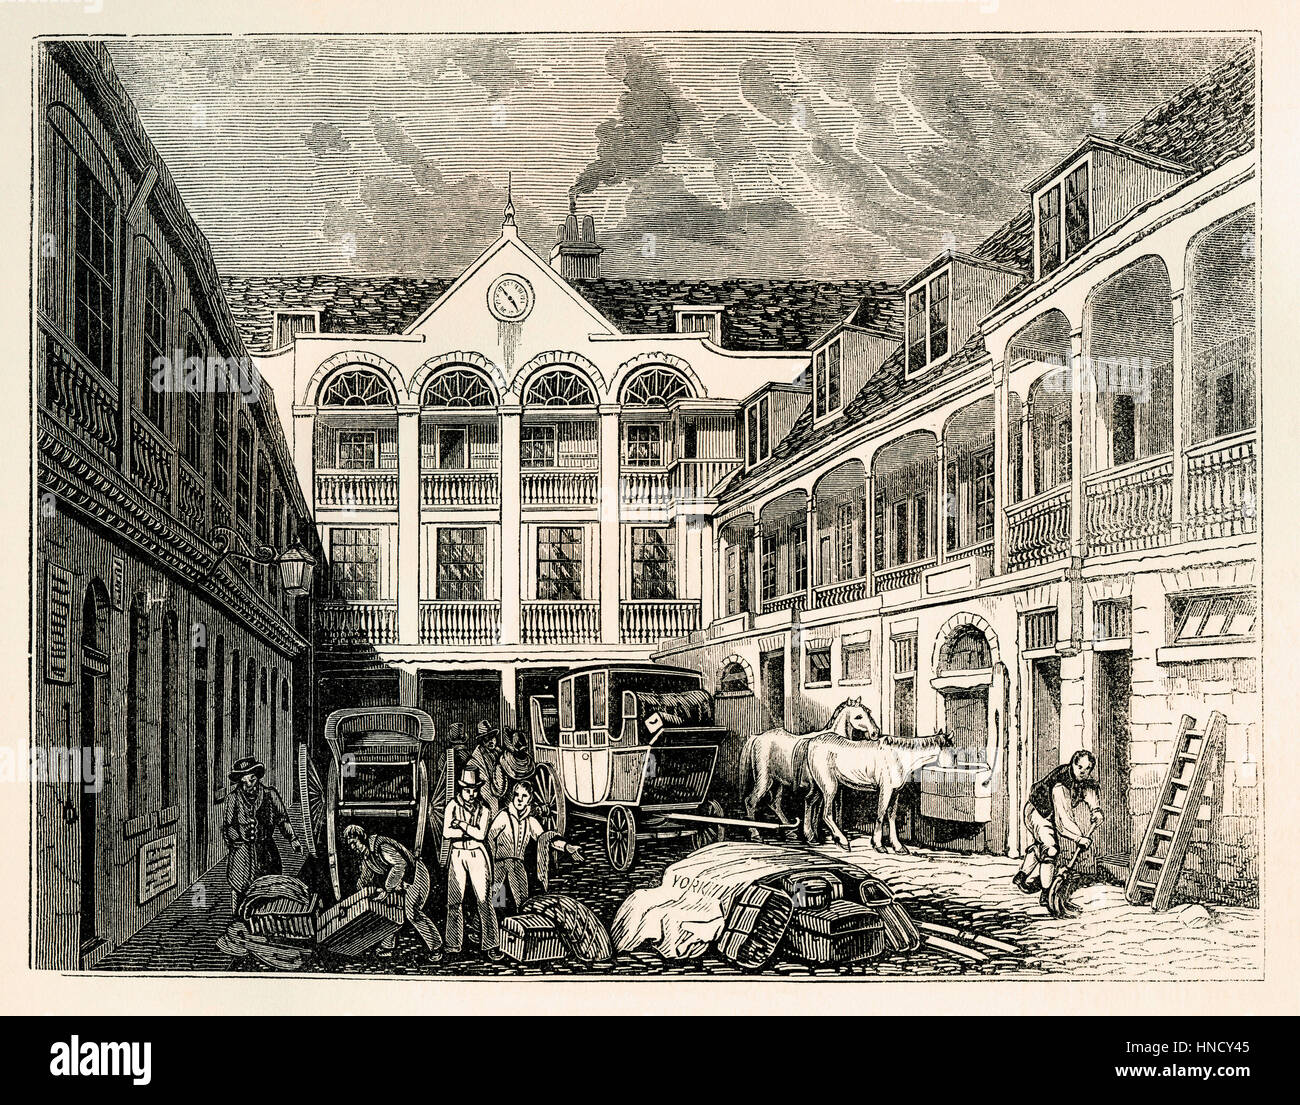 The courtyard of the Old Blue Boar tavern in Holborn, London, England, – an old engraving c. 1700 - Stock Image